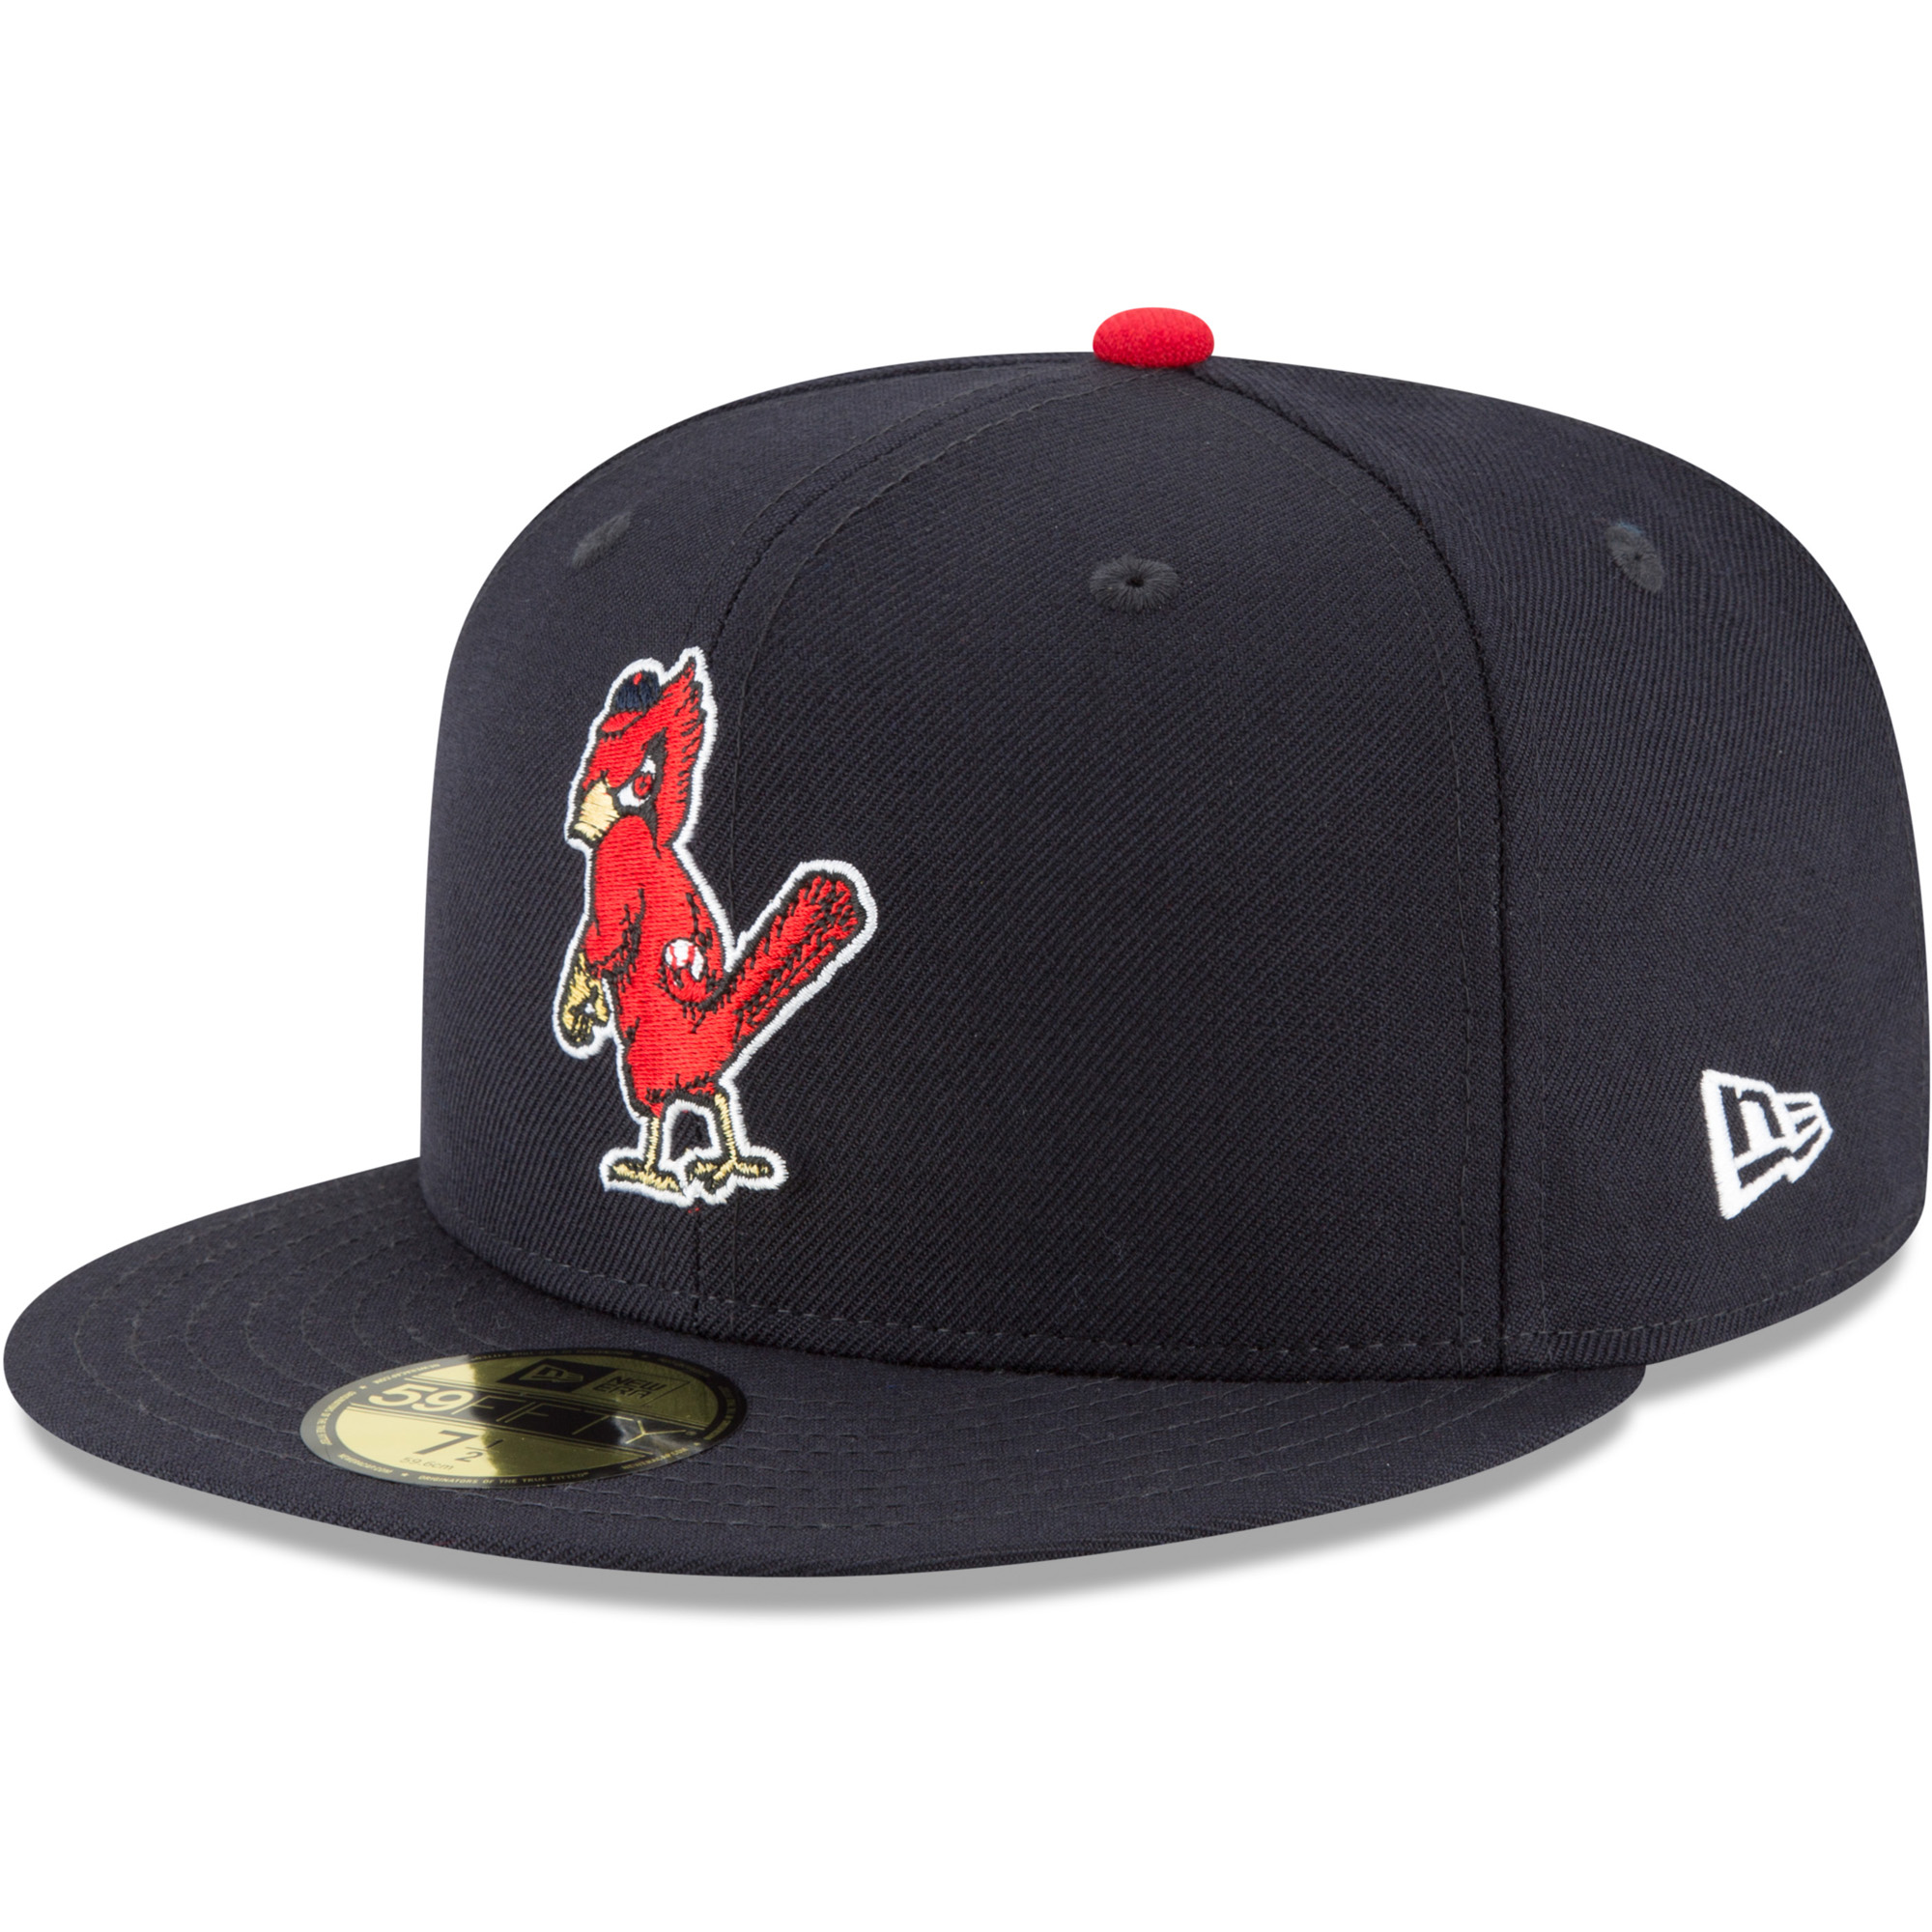 St. Louis Cardinals New Era Cooperstown Collection Wool 59FIFTY Fitted Hat - Navy